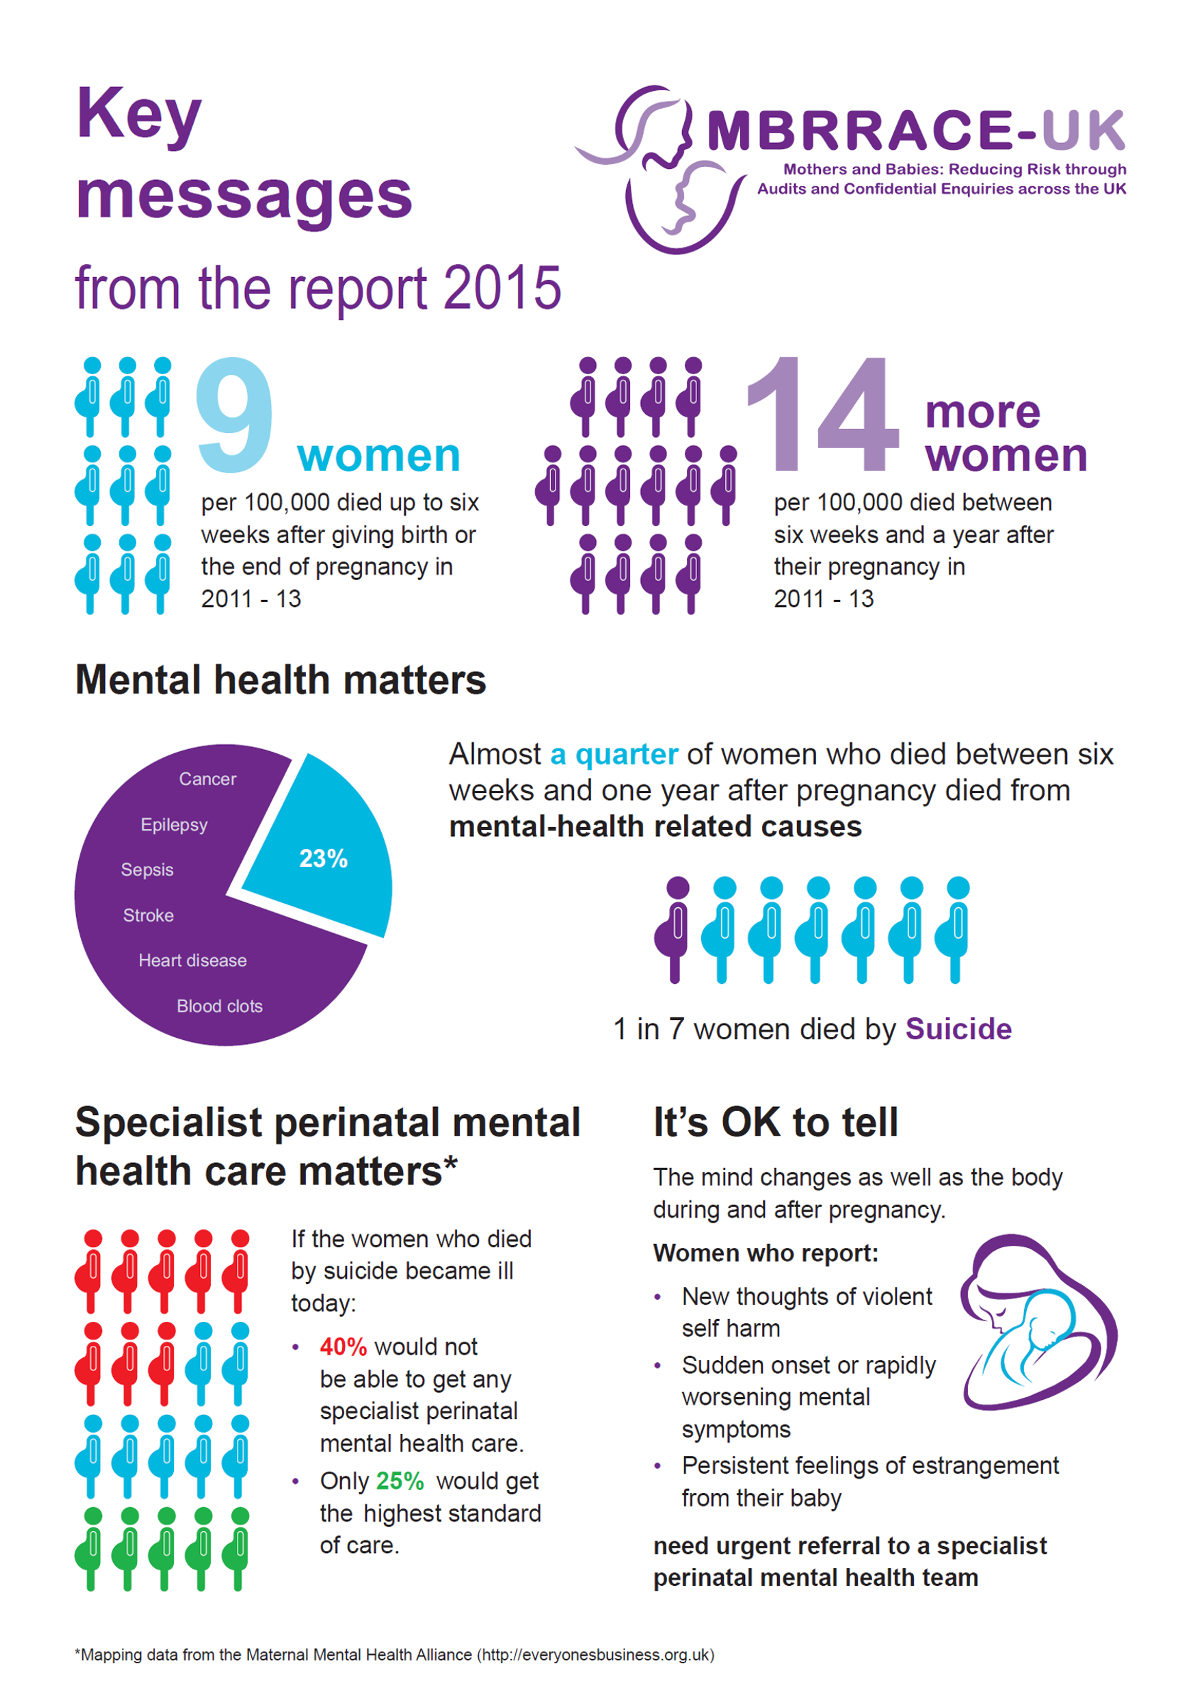 Key facts from the 2015 MBRRACE-UK report